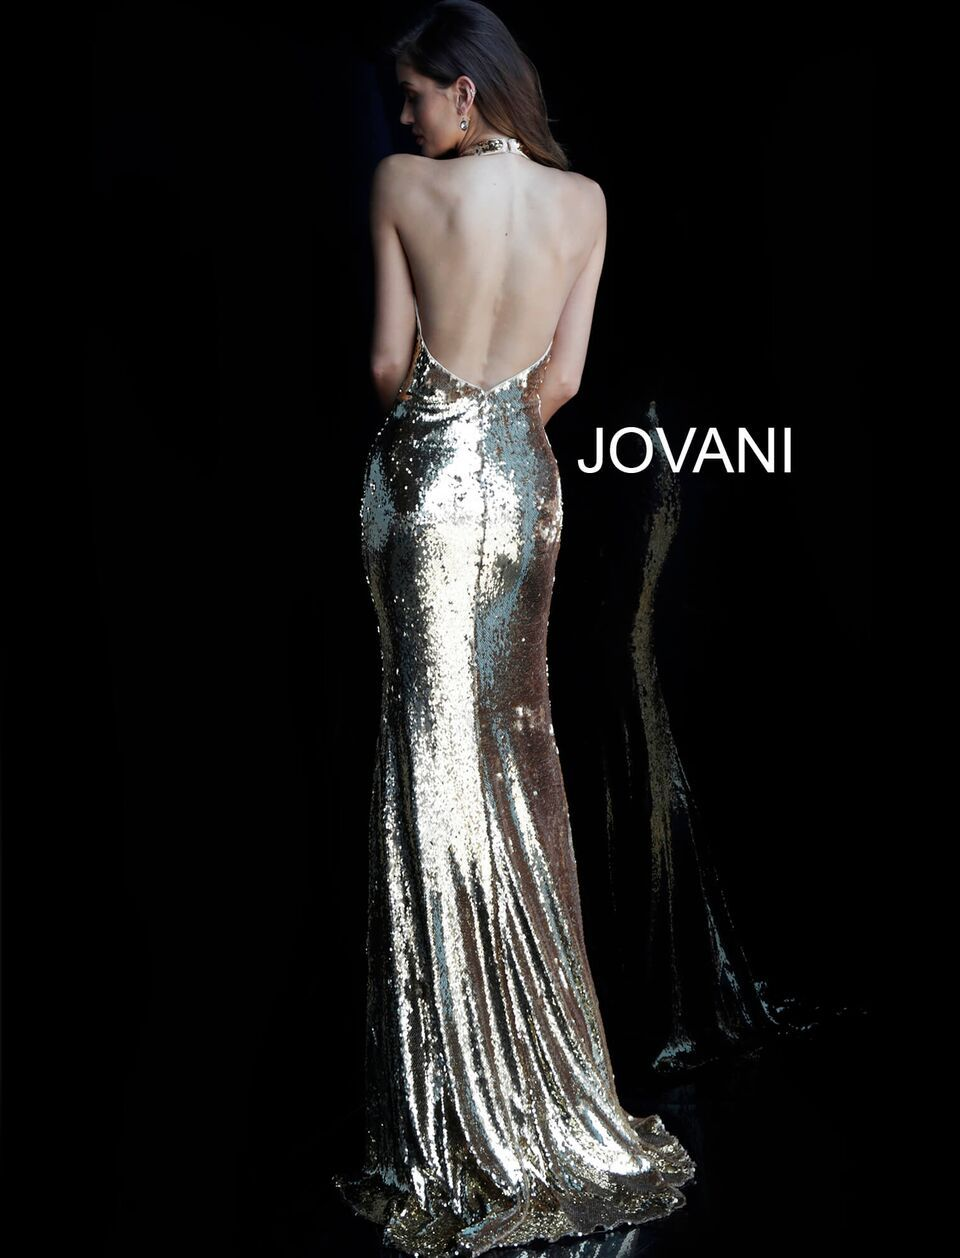 Jovani Gold Halter Neck Backless Sequin Gown - Gissings Boutique